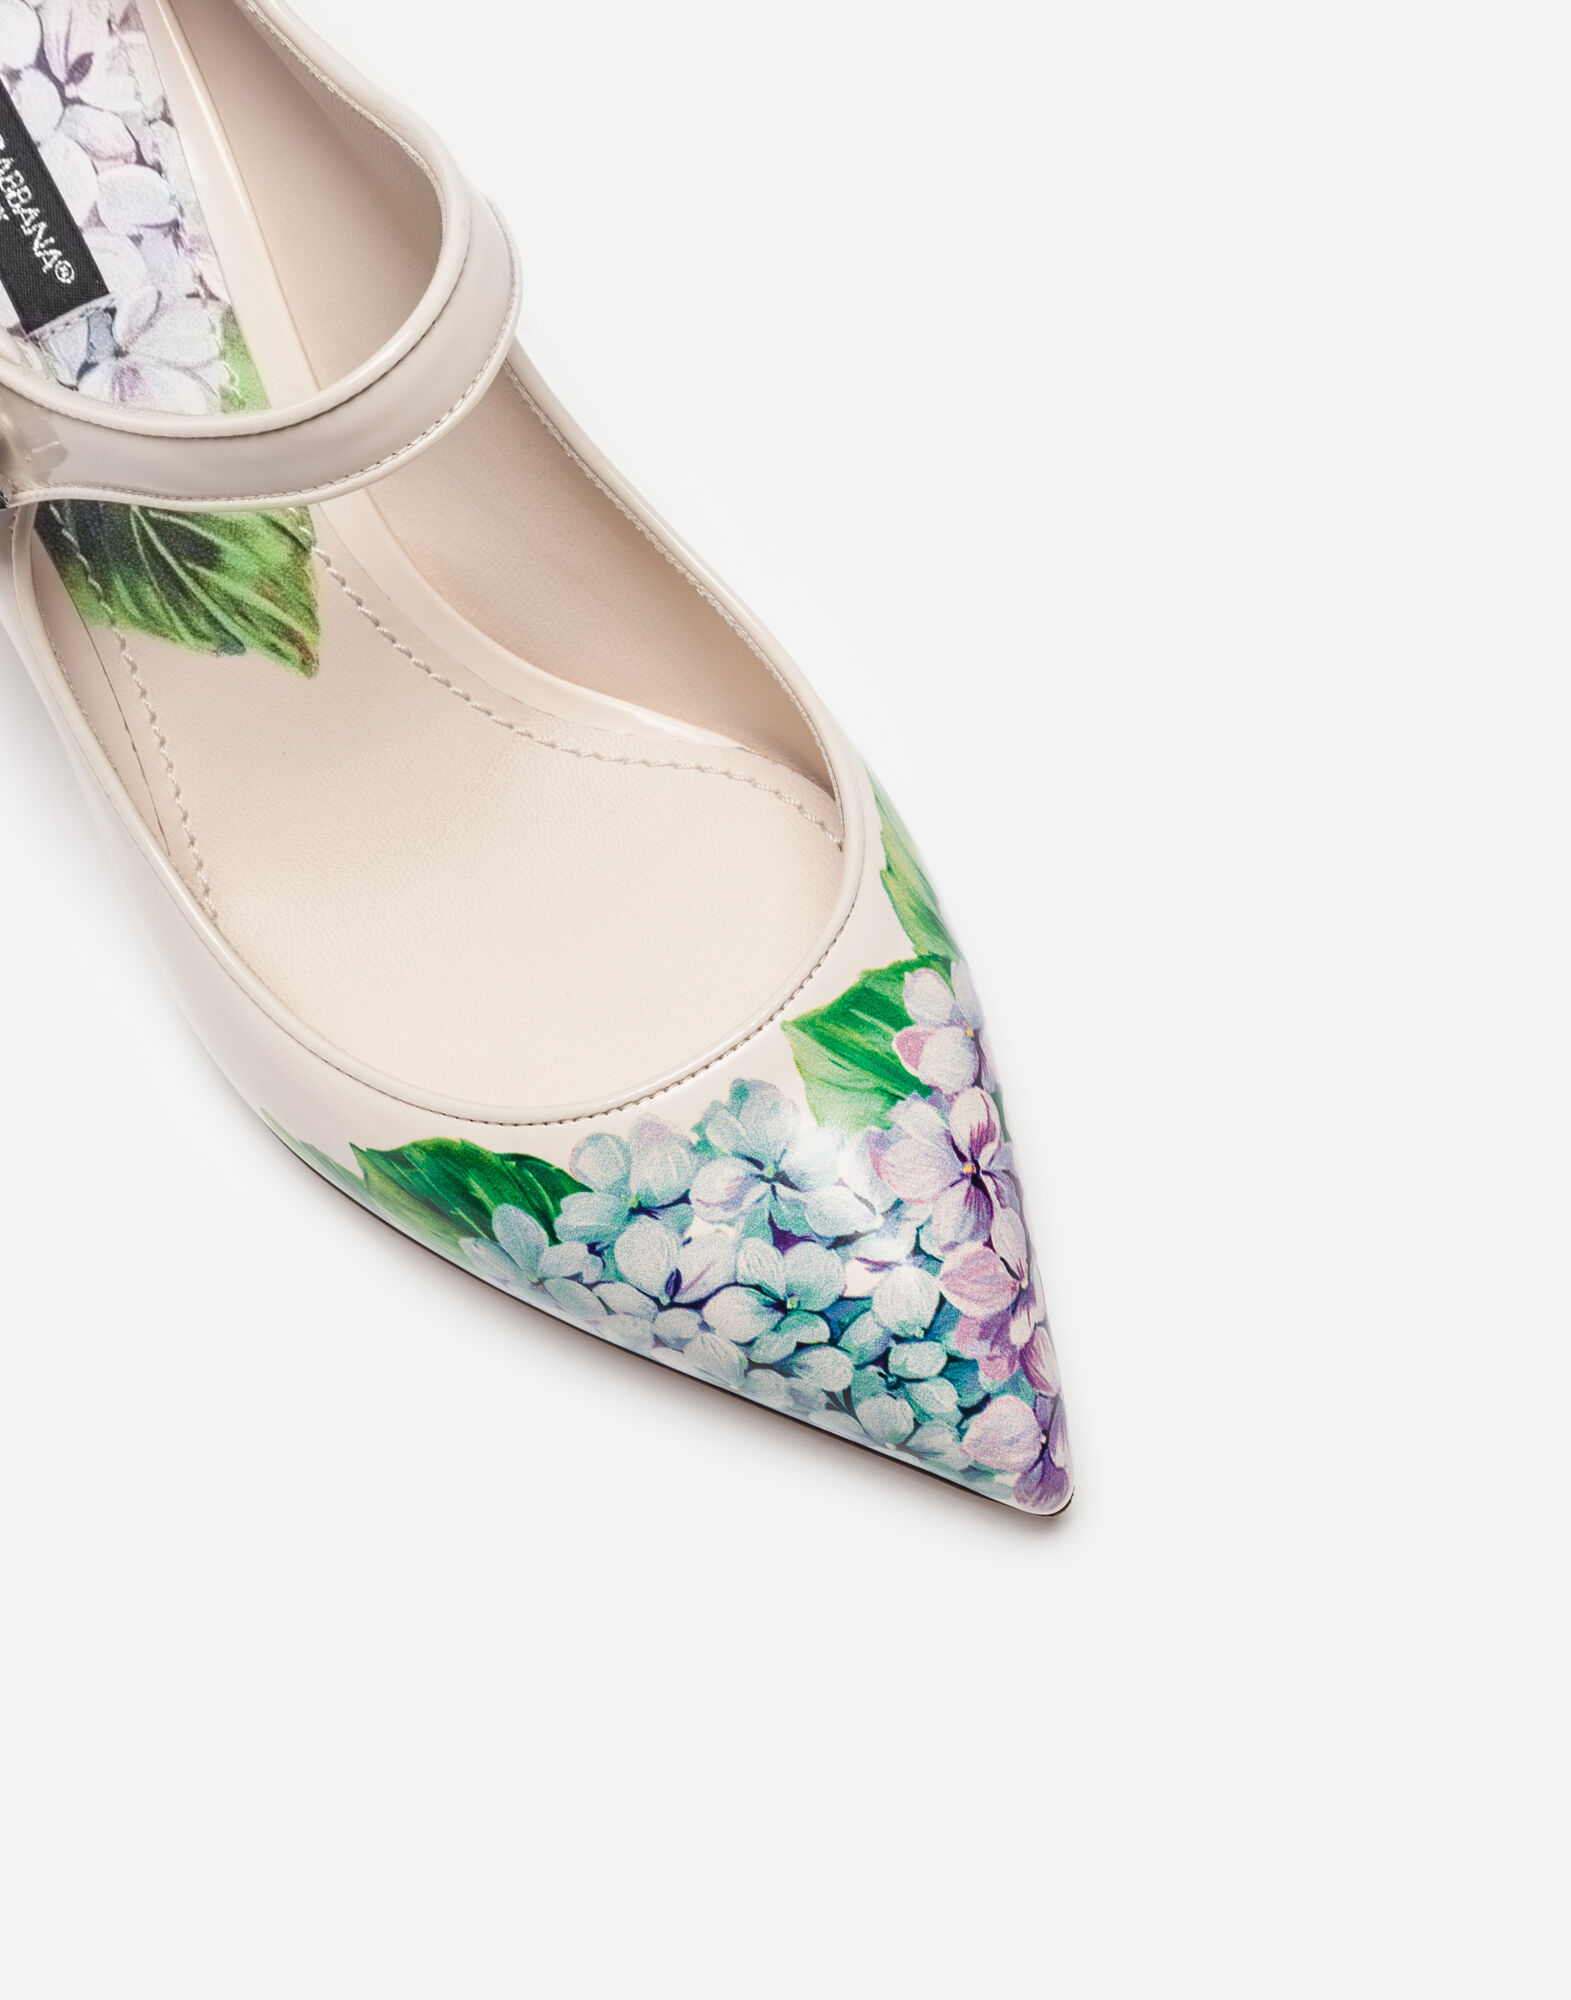 PRINTED LEATHER MARY JANES